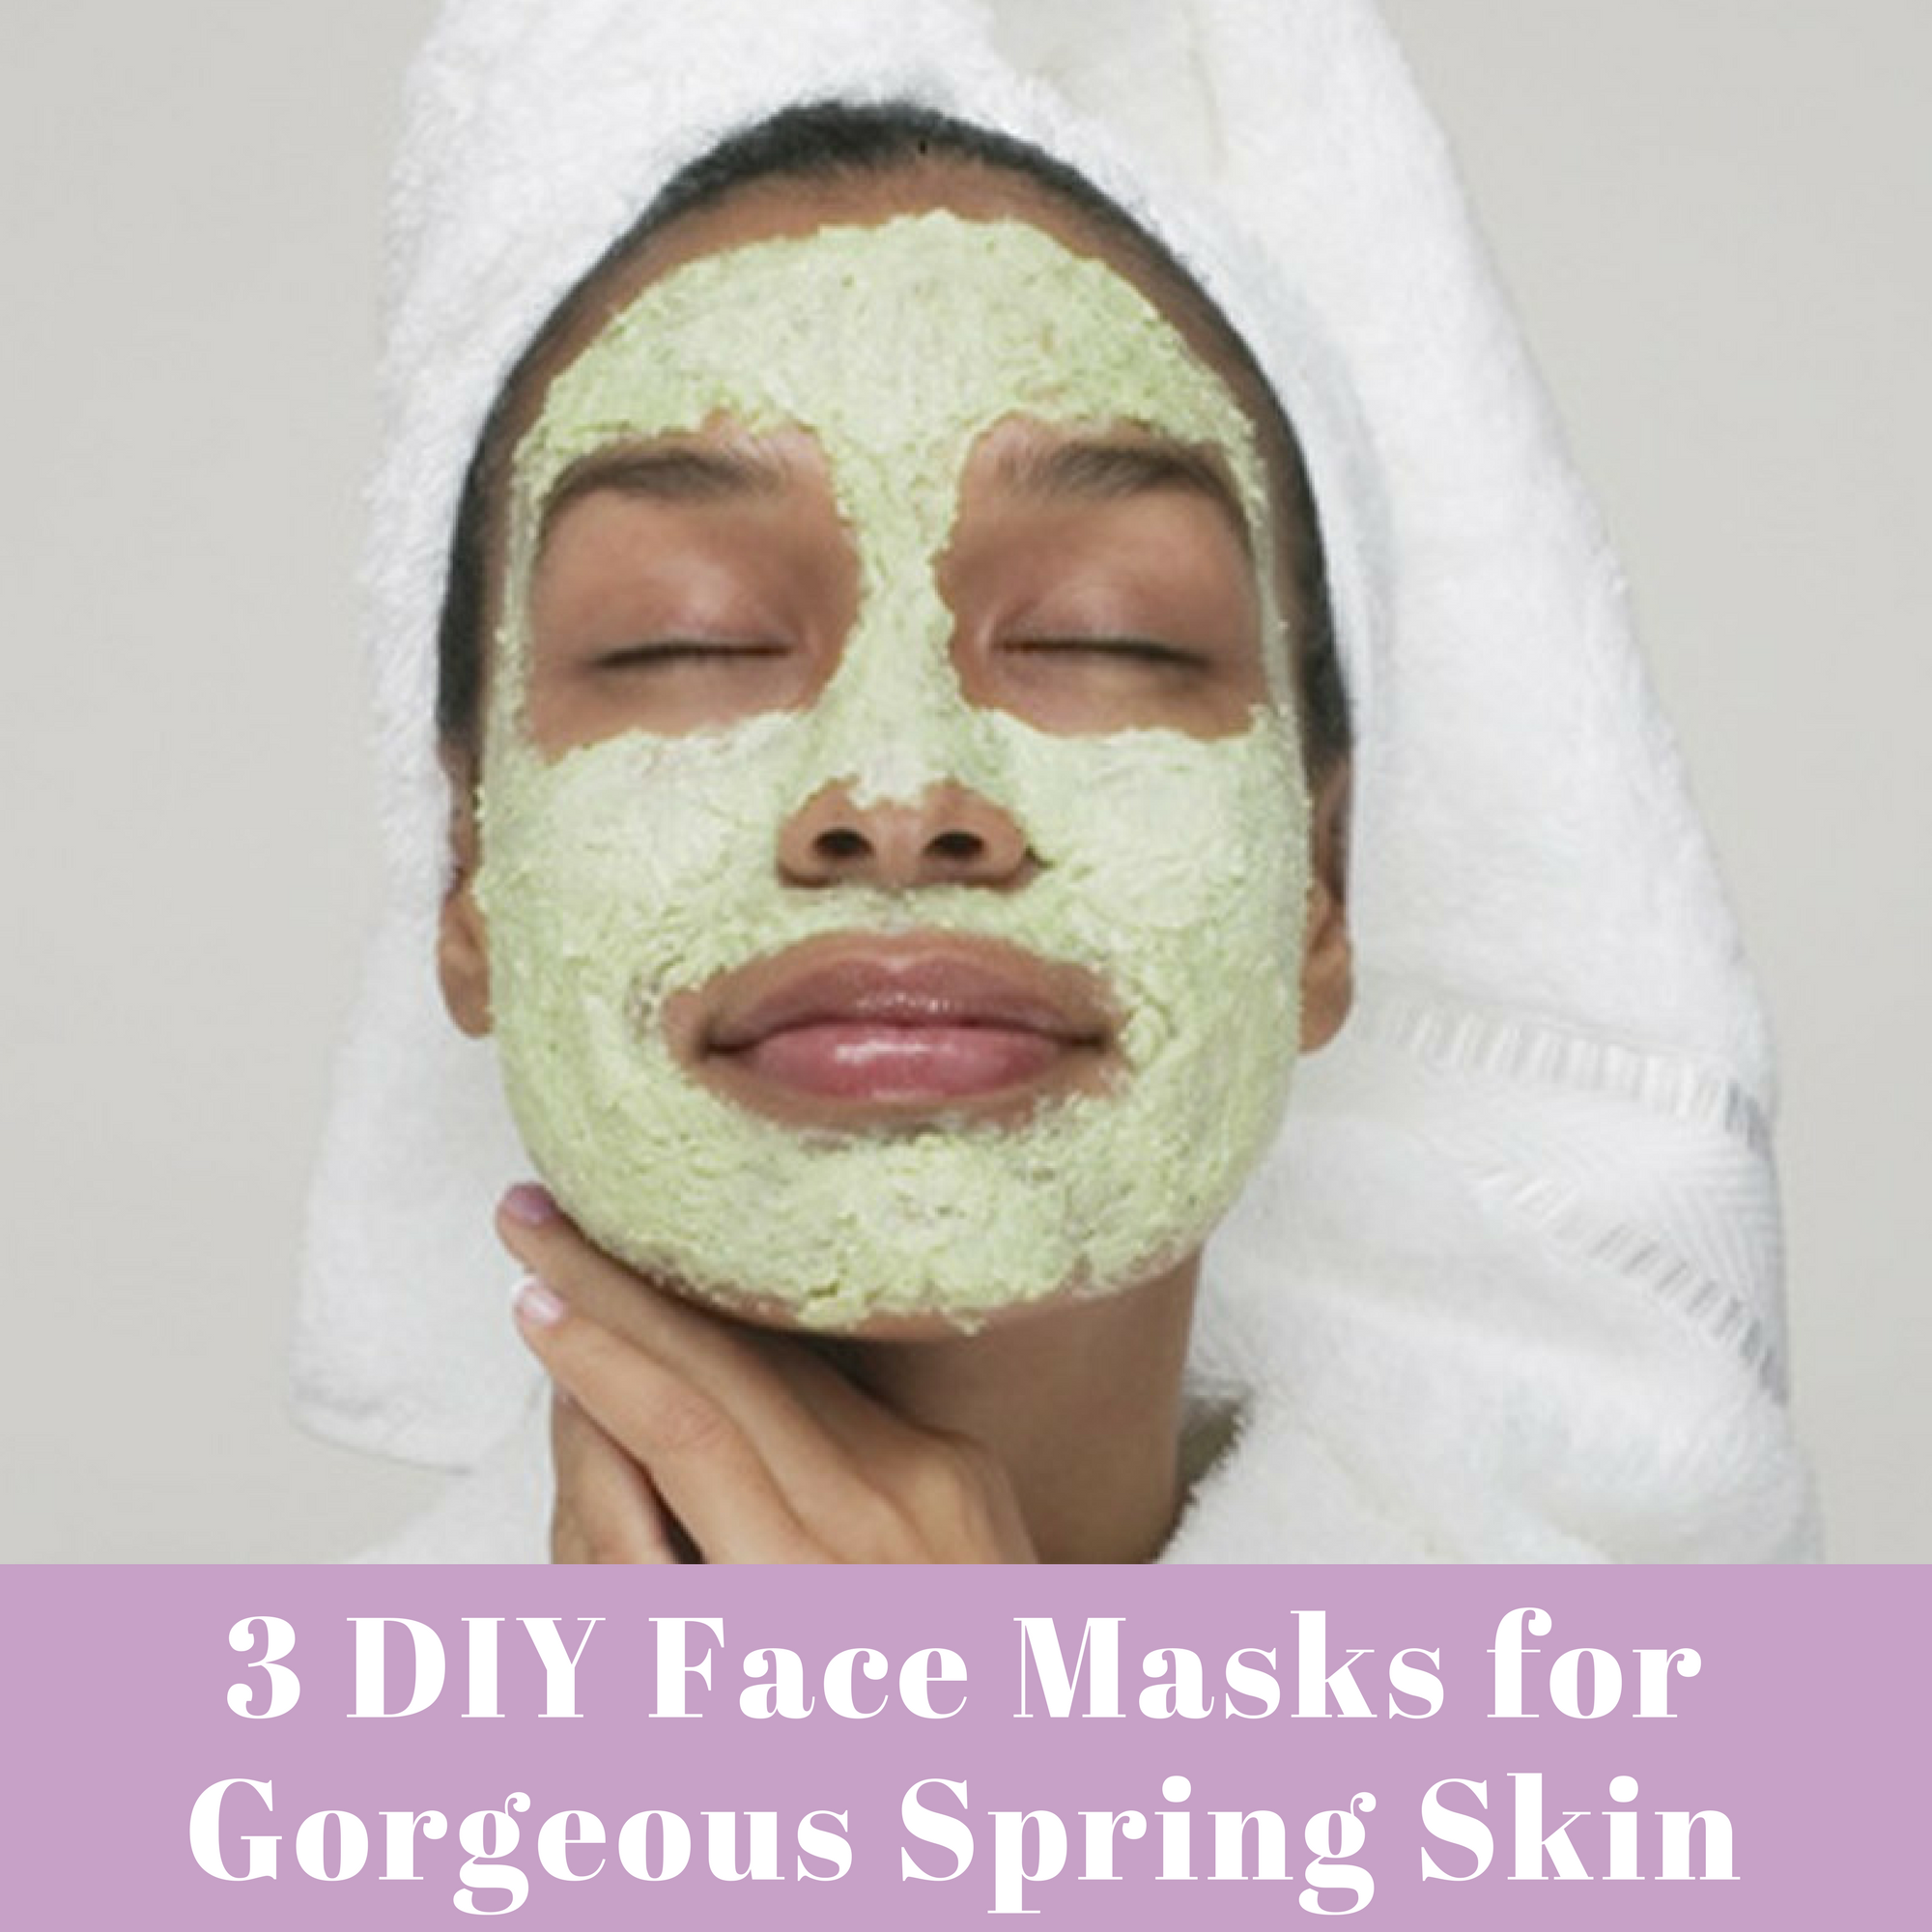 3 DIY FACE MASKS FOR GORGEOUS SPRING SKIN